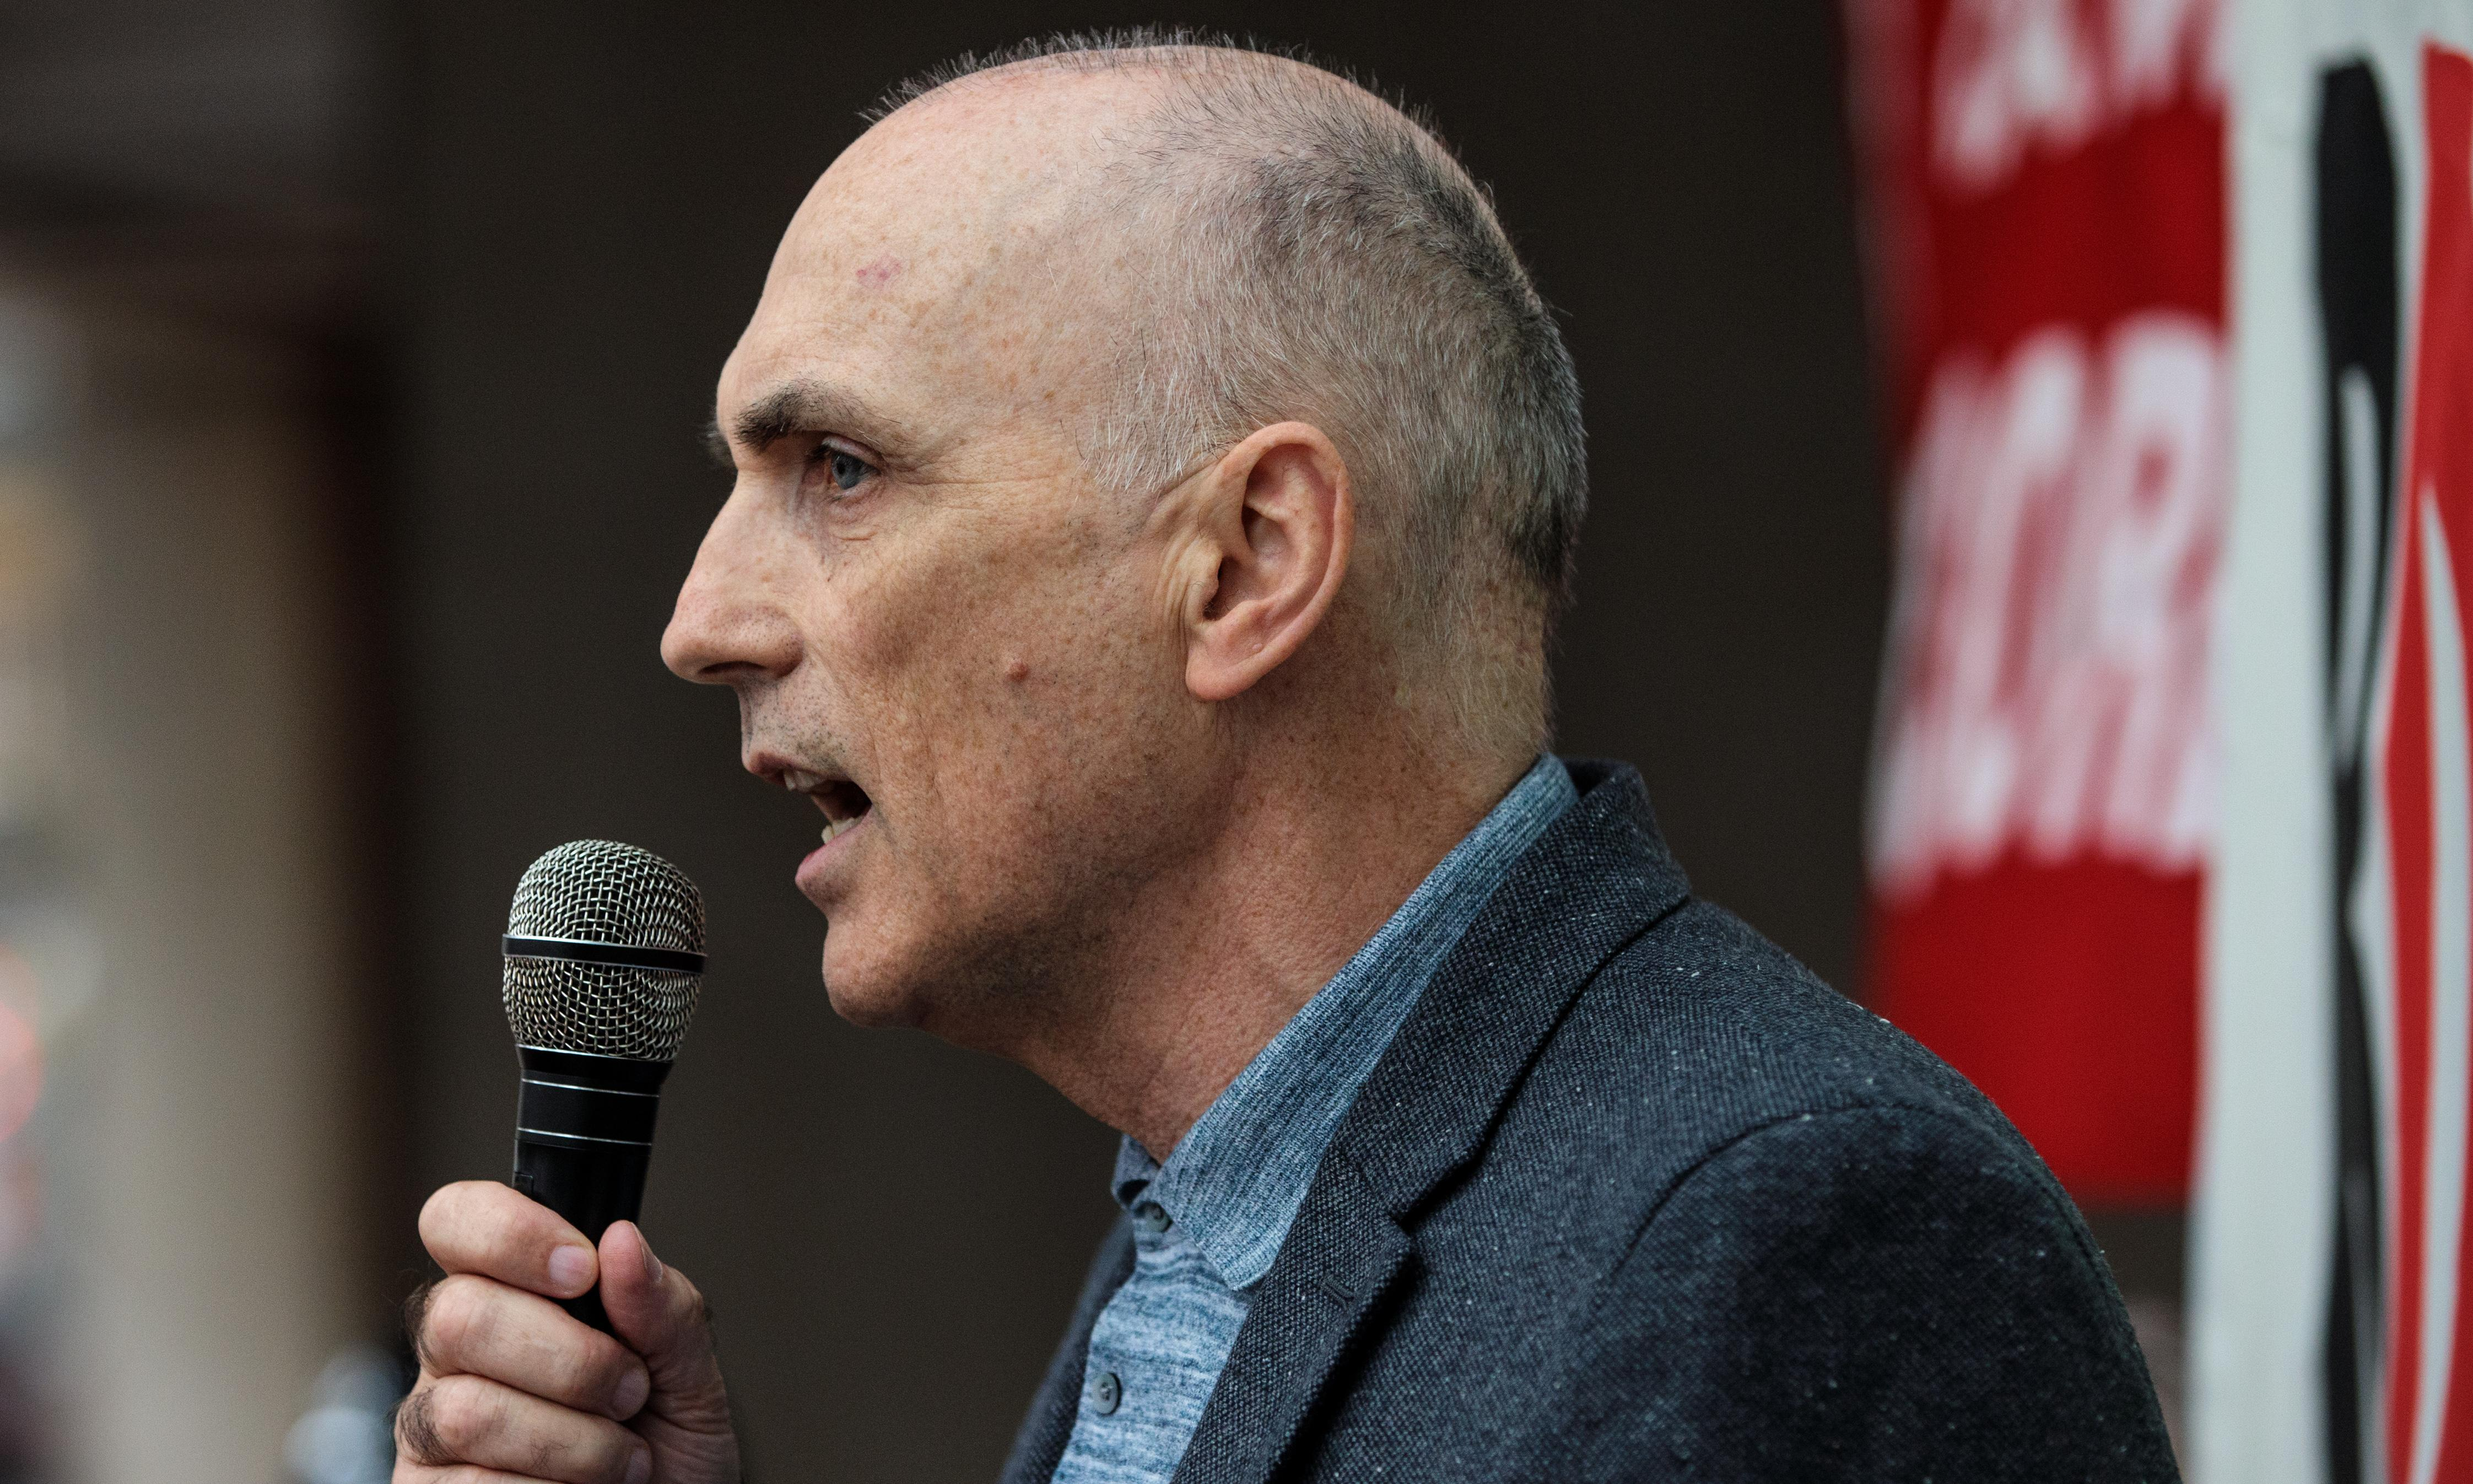 Labour must reverse the disastrous decision to readmit Chris Williamson